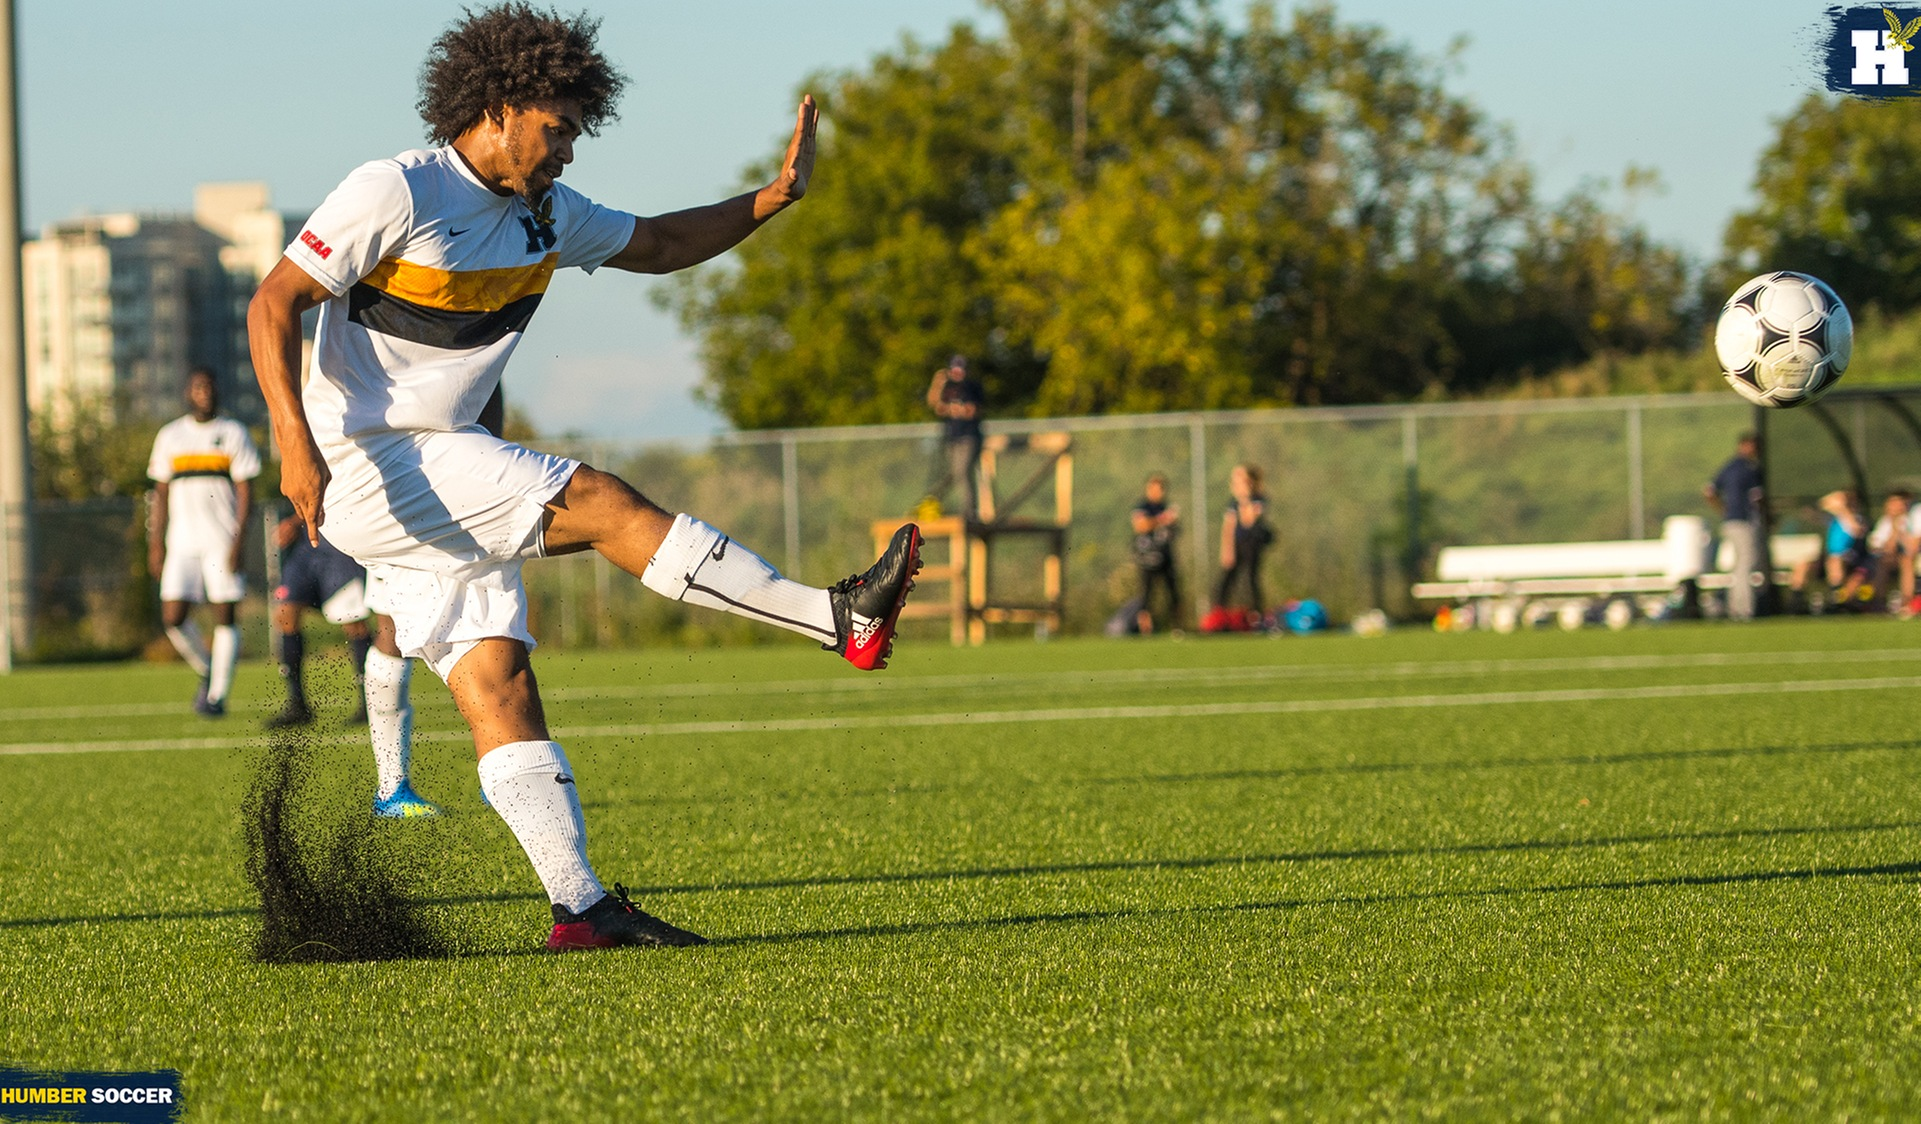 No. 5 MEN'S SOCCER RETURNS TO THE PITCH WEDNESDAY AT CONESTOGA